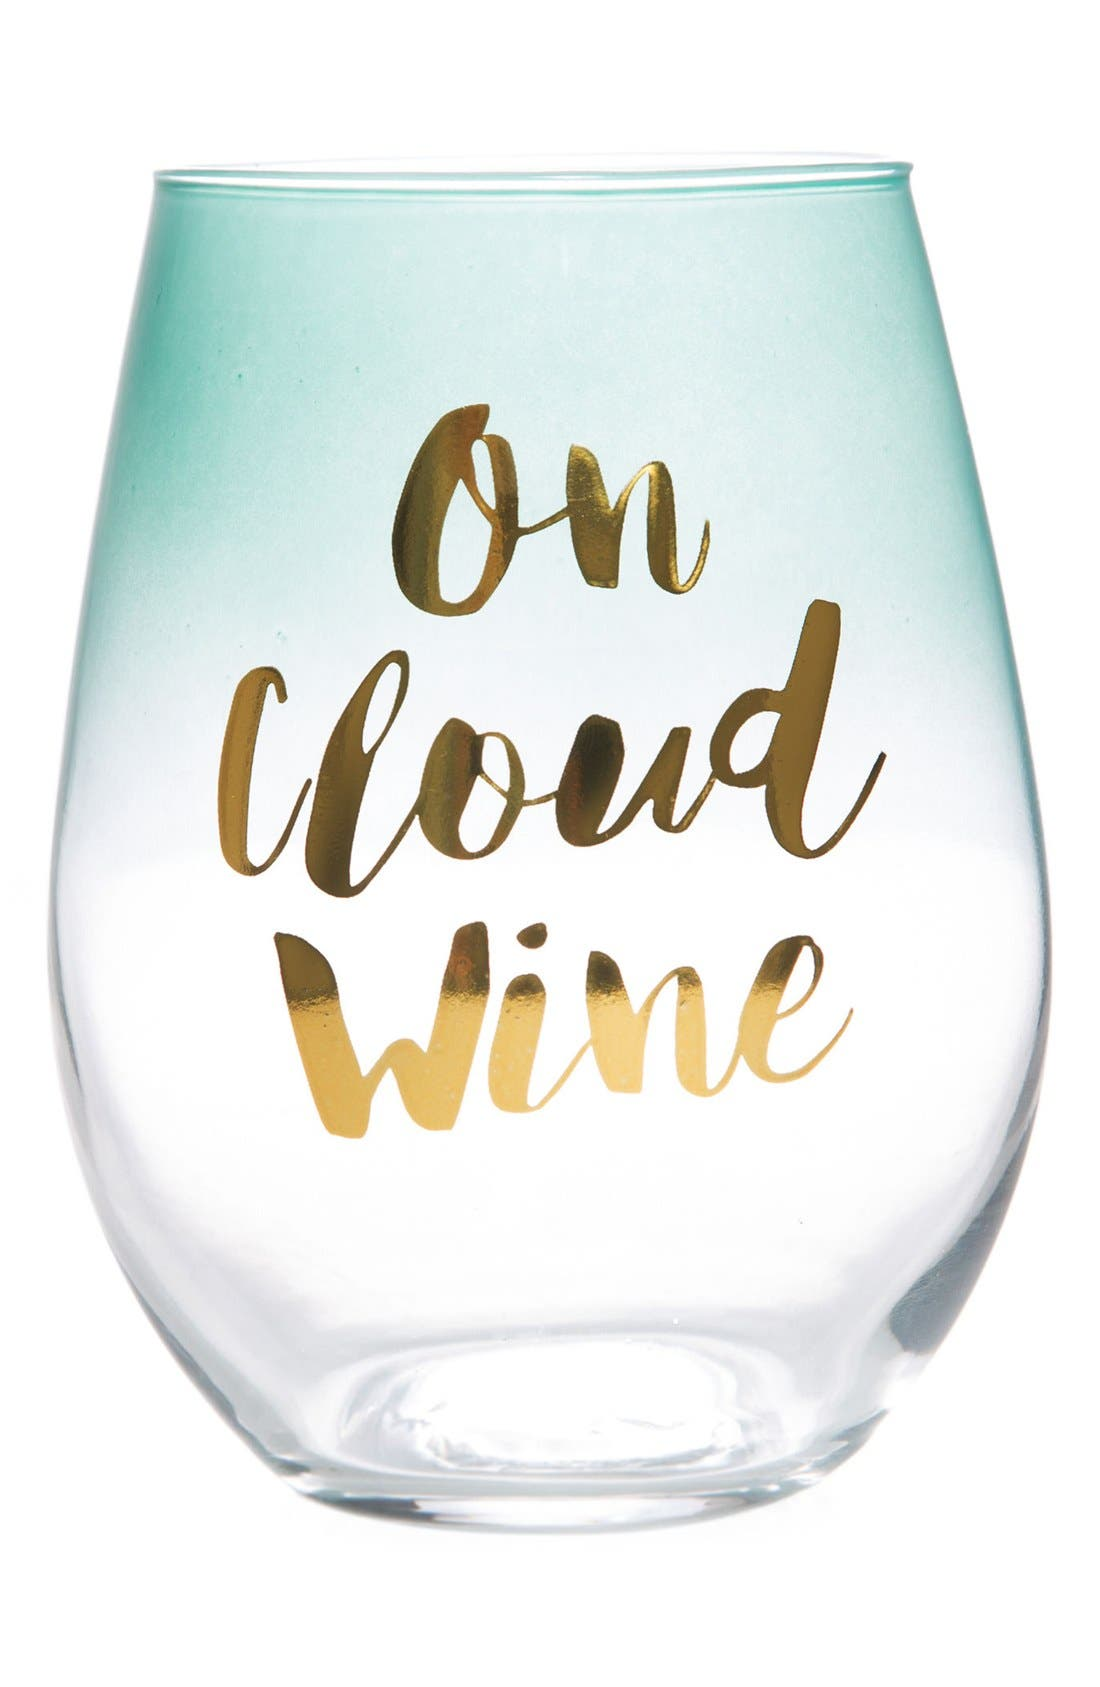 Main Image - Slant Collections On Cloud Wine Stemless Wine Glass